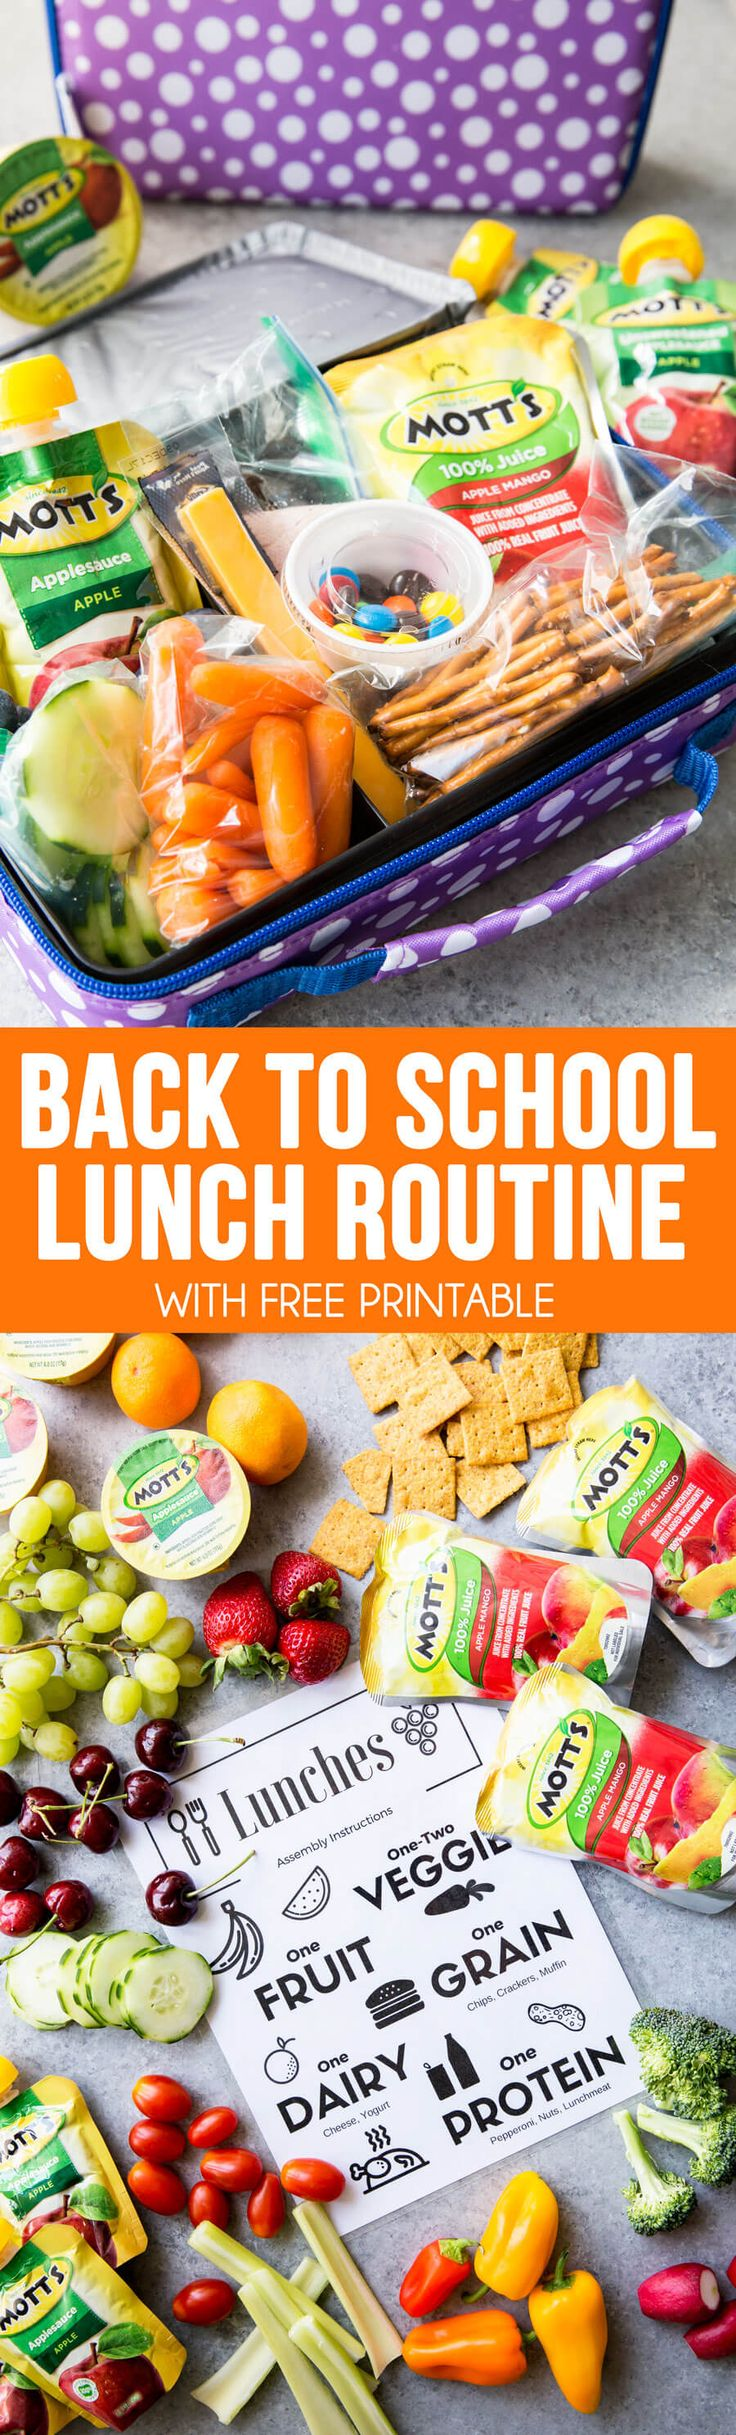 Back to School Lunch Routines, an easy way to get your kid's to pack their own lunches for back to school, with healthy options. Includes free printable. #ad